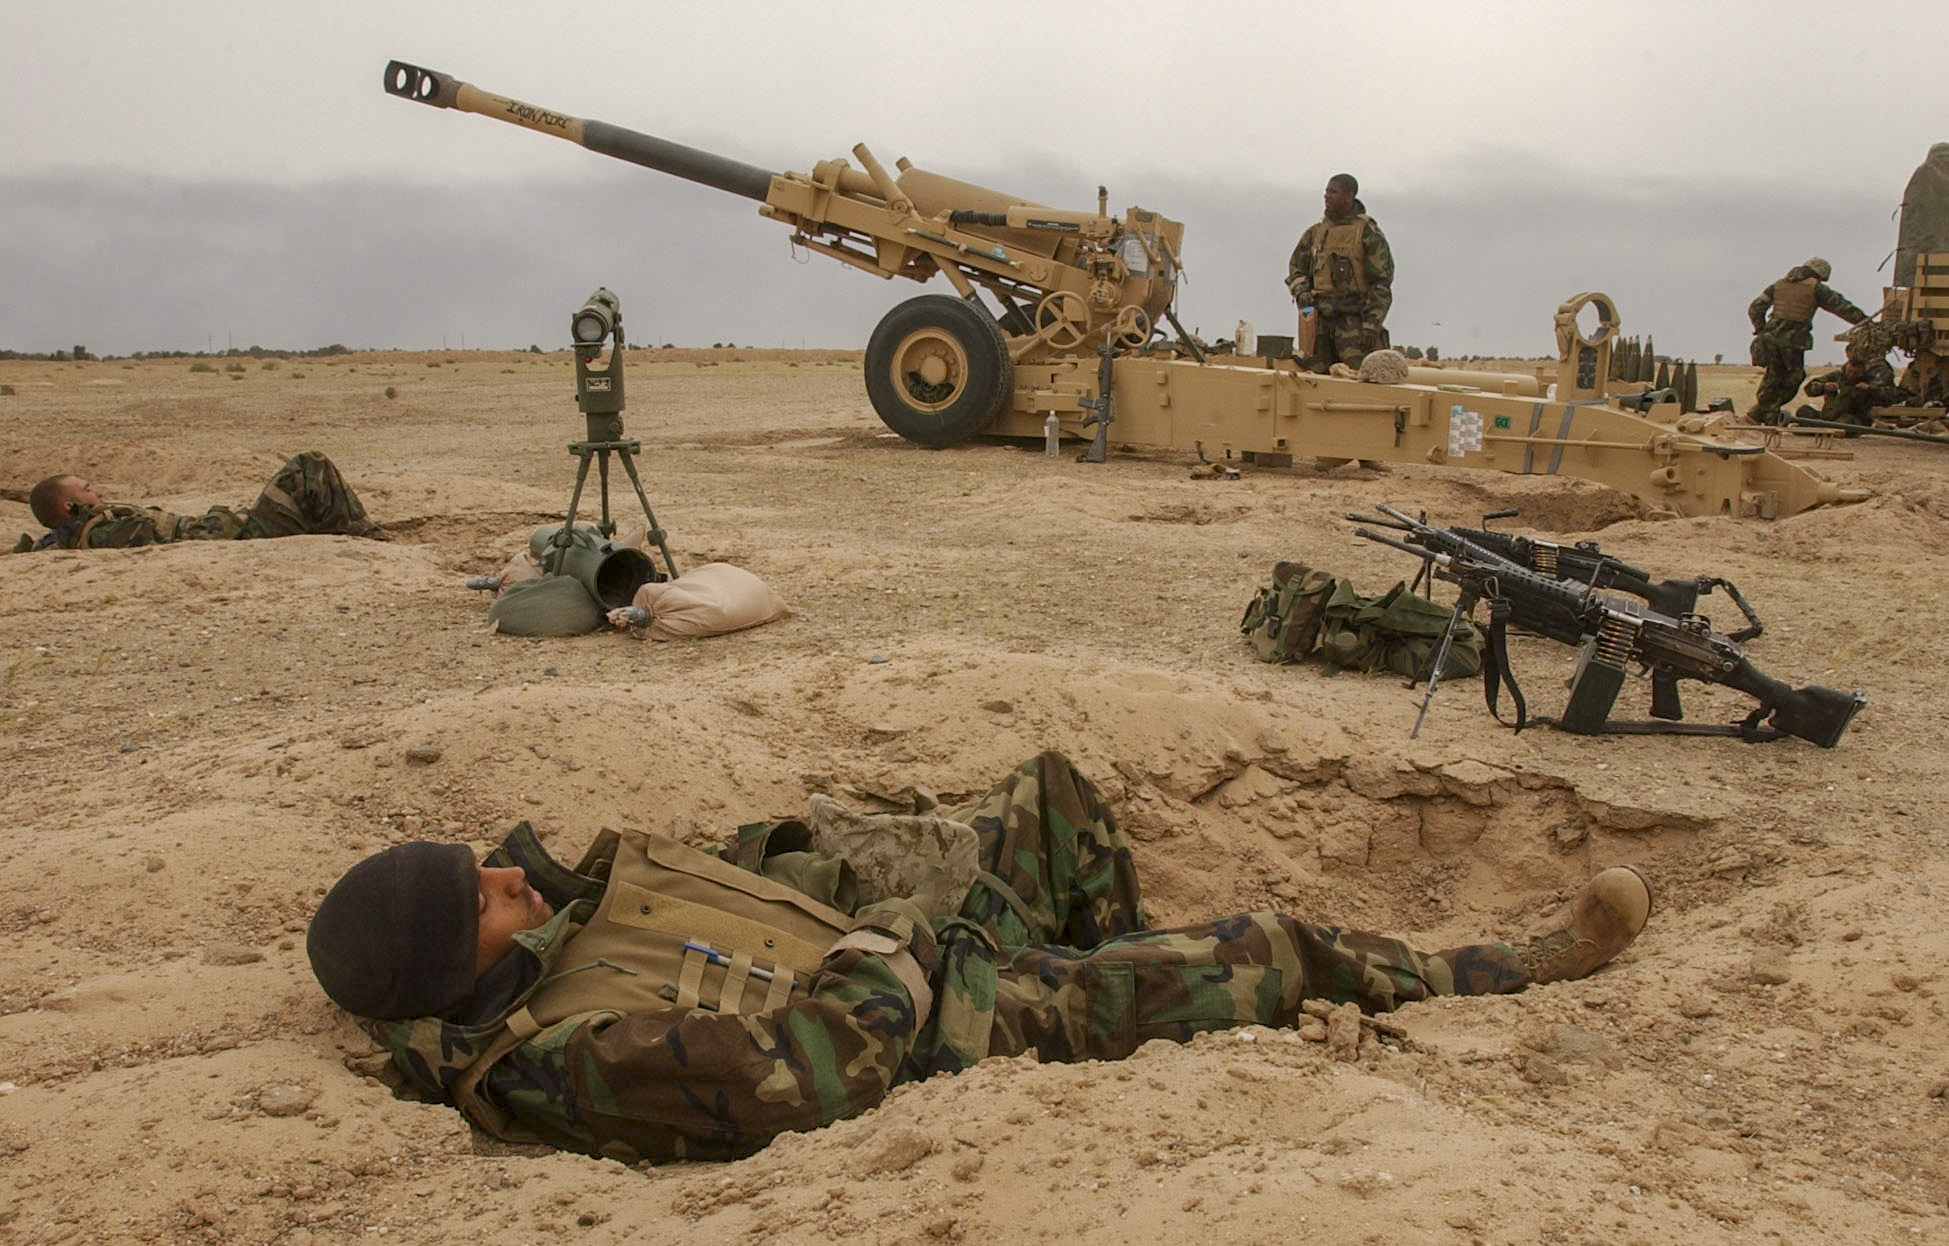 03/22/2003 Images shot in southern Iraq Photo by Jud McCrehin/Marine Corps Times Lance Cpl. Guilbert Alce, 23, with battery M, 3rd Battalion, 11th Marine Regiment takes a nap in his sleeping hole near the 155mm Howitzer he works as a powder man on in an artillery position in southern Iraq.